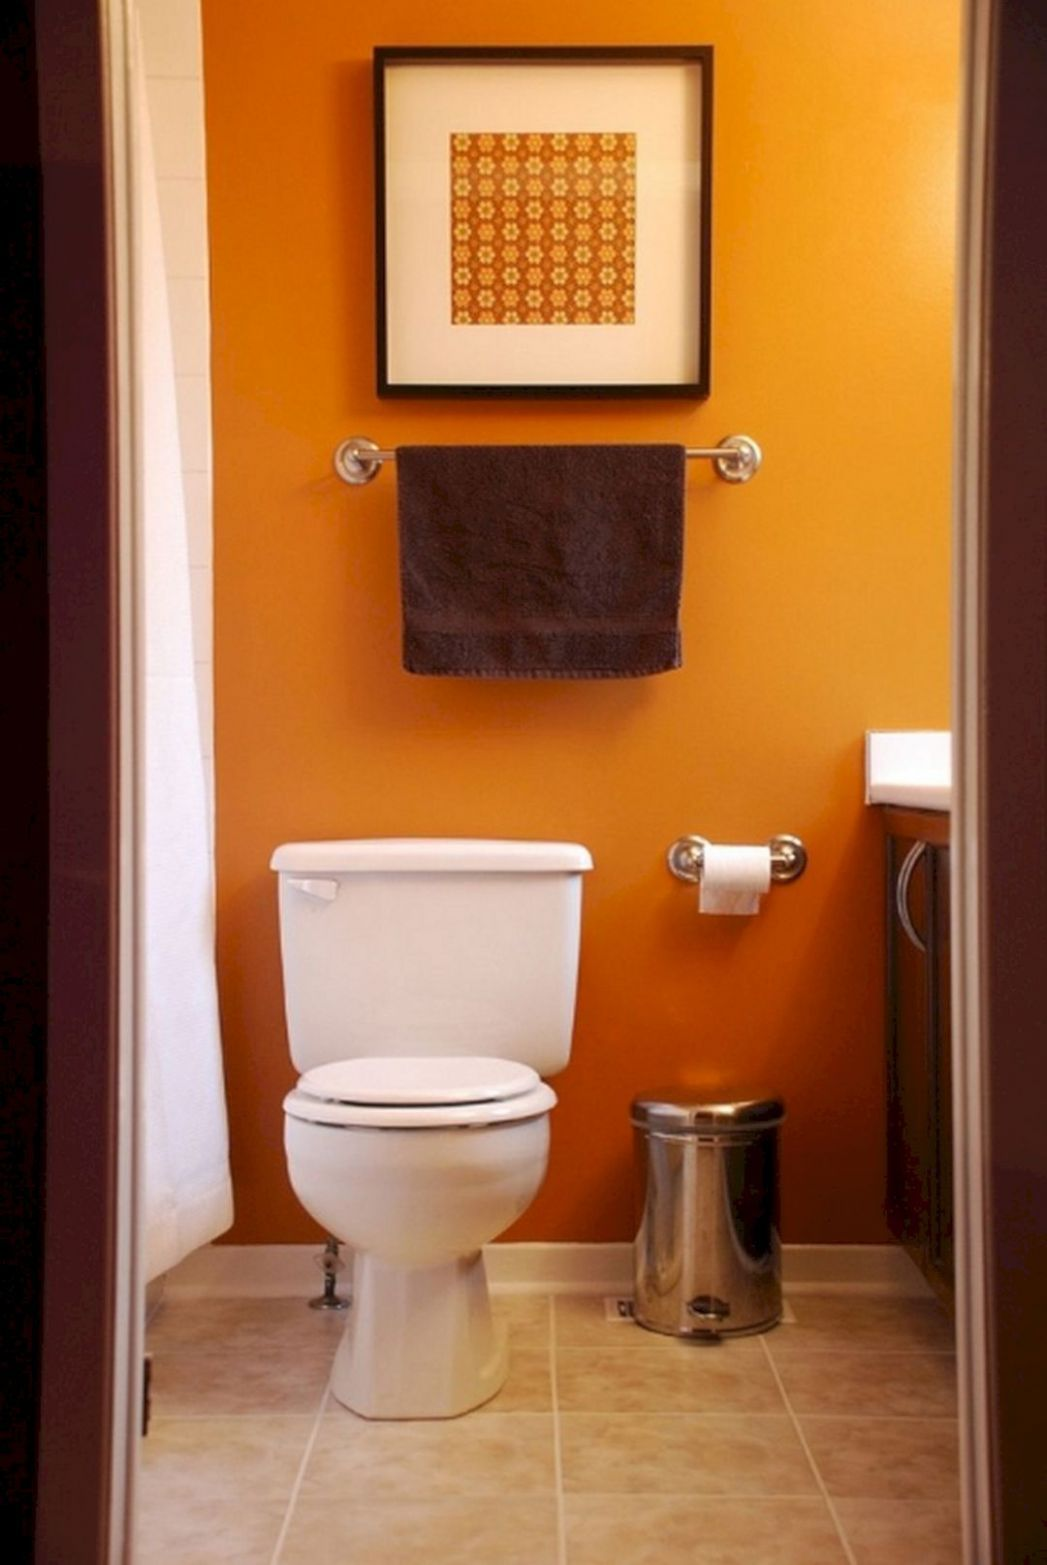 11 Most Popular Bathroom Color Design Ideas You Need to Copy (With ..